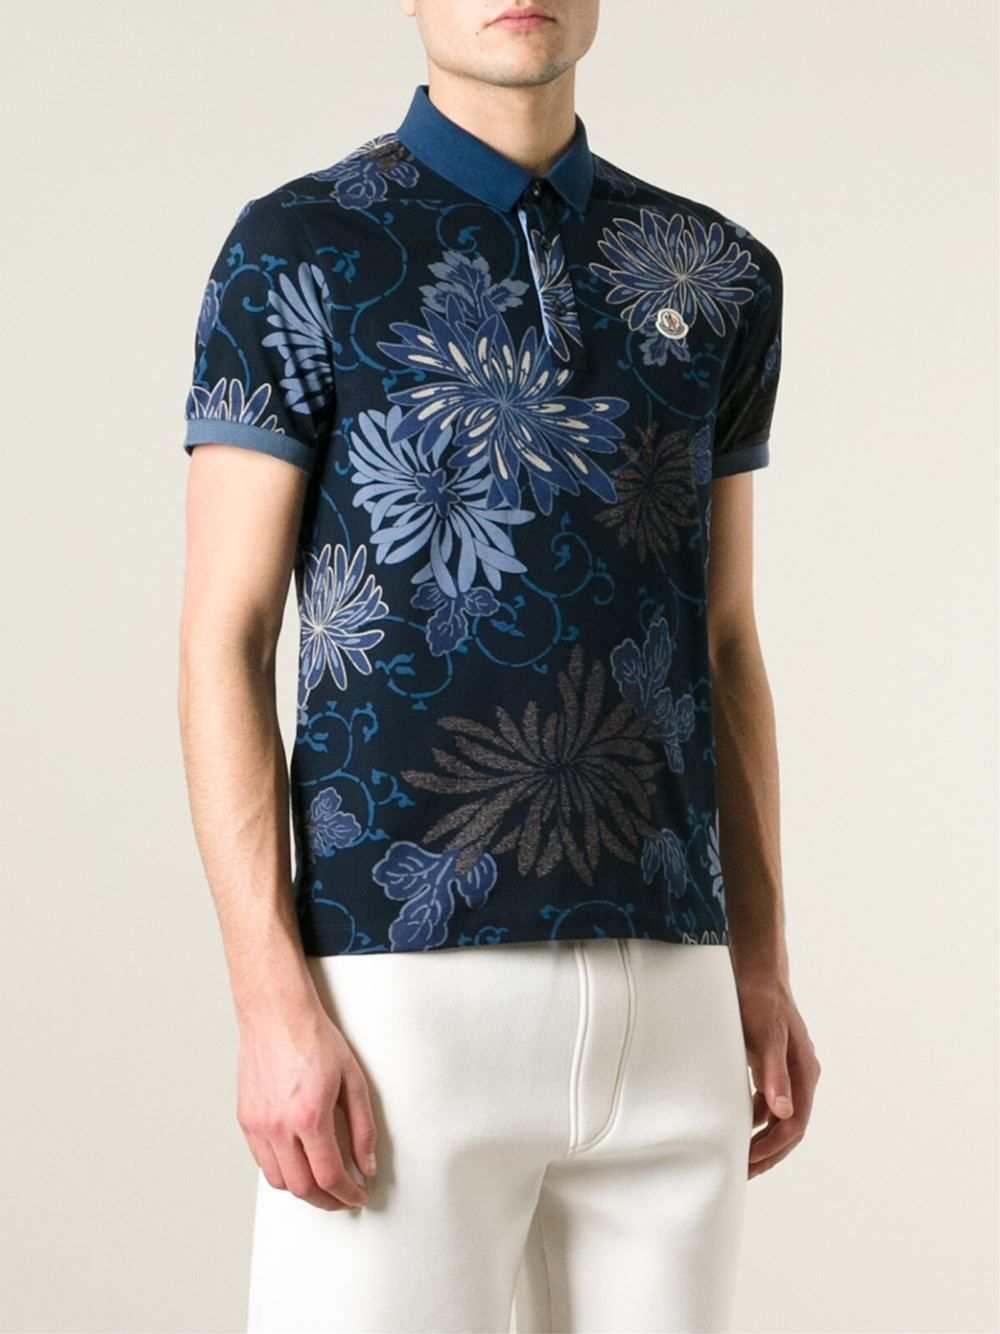 #moncler #mens #poloshirts #floralprints #blue #polo #shirts ##